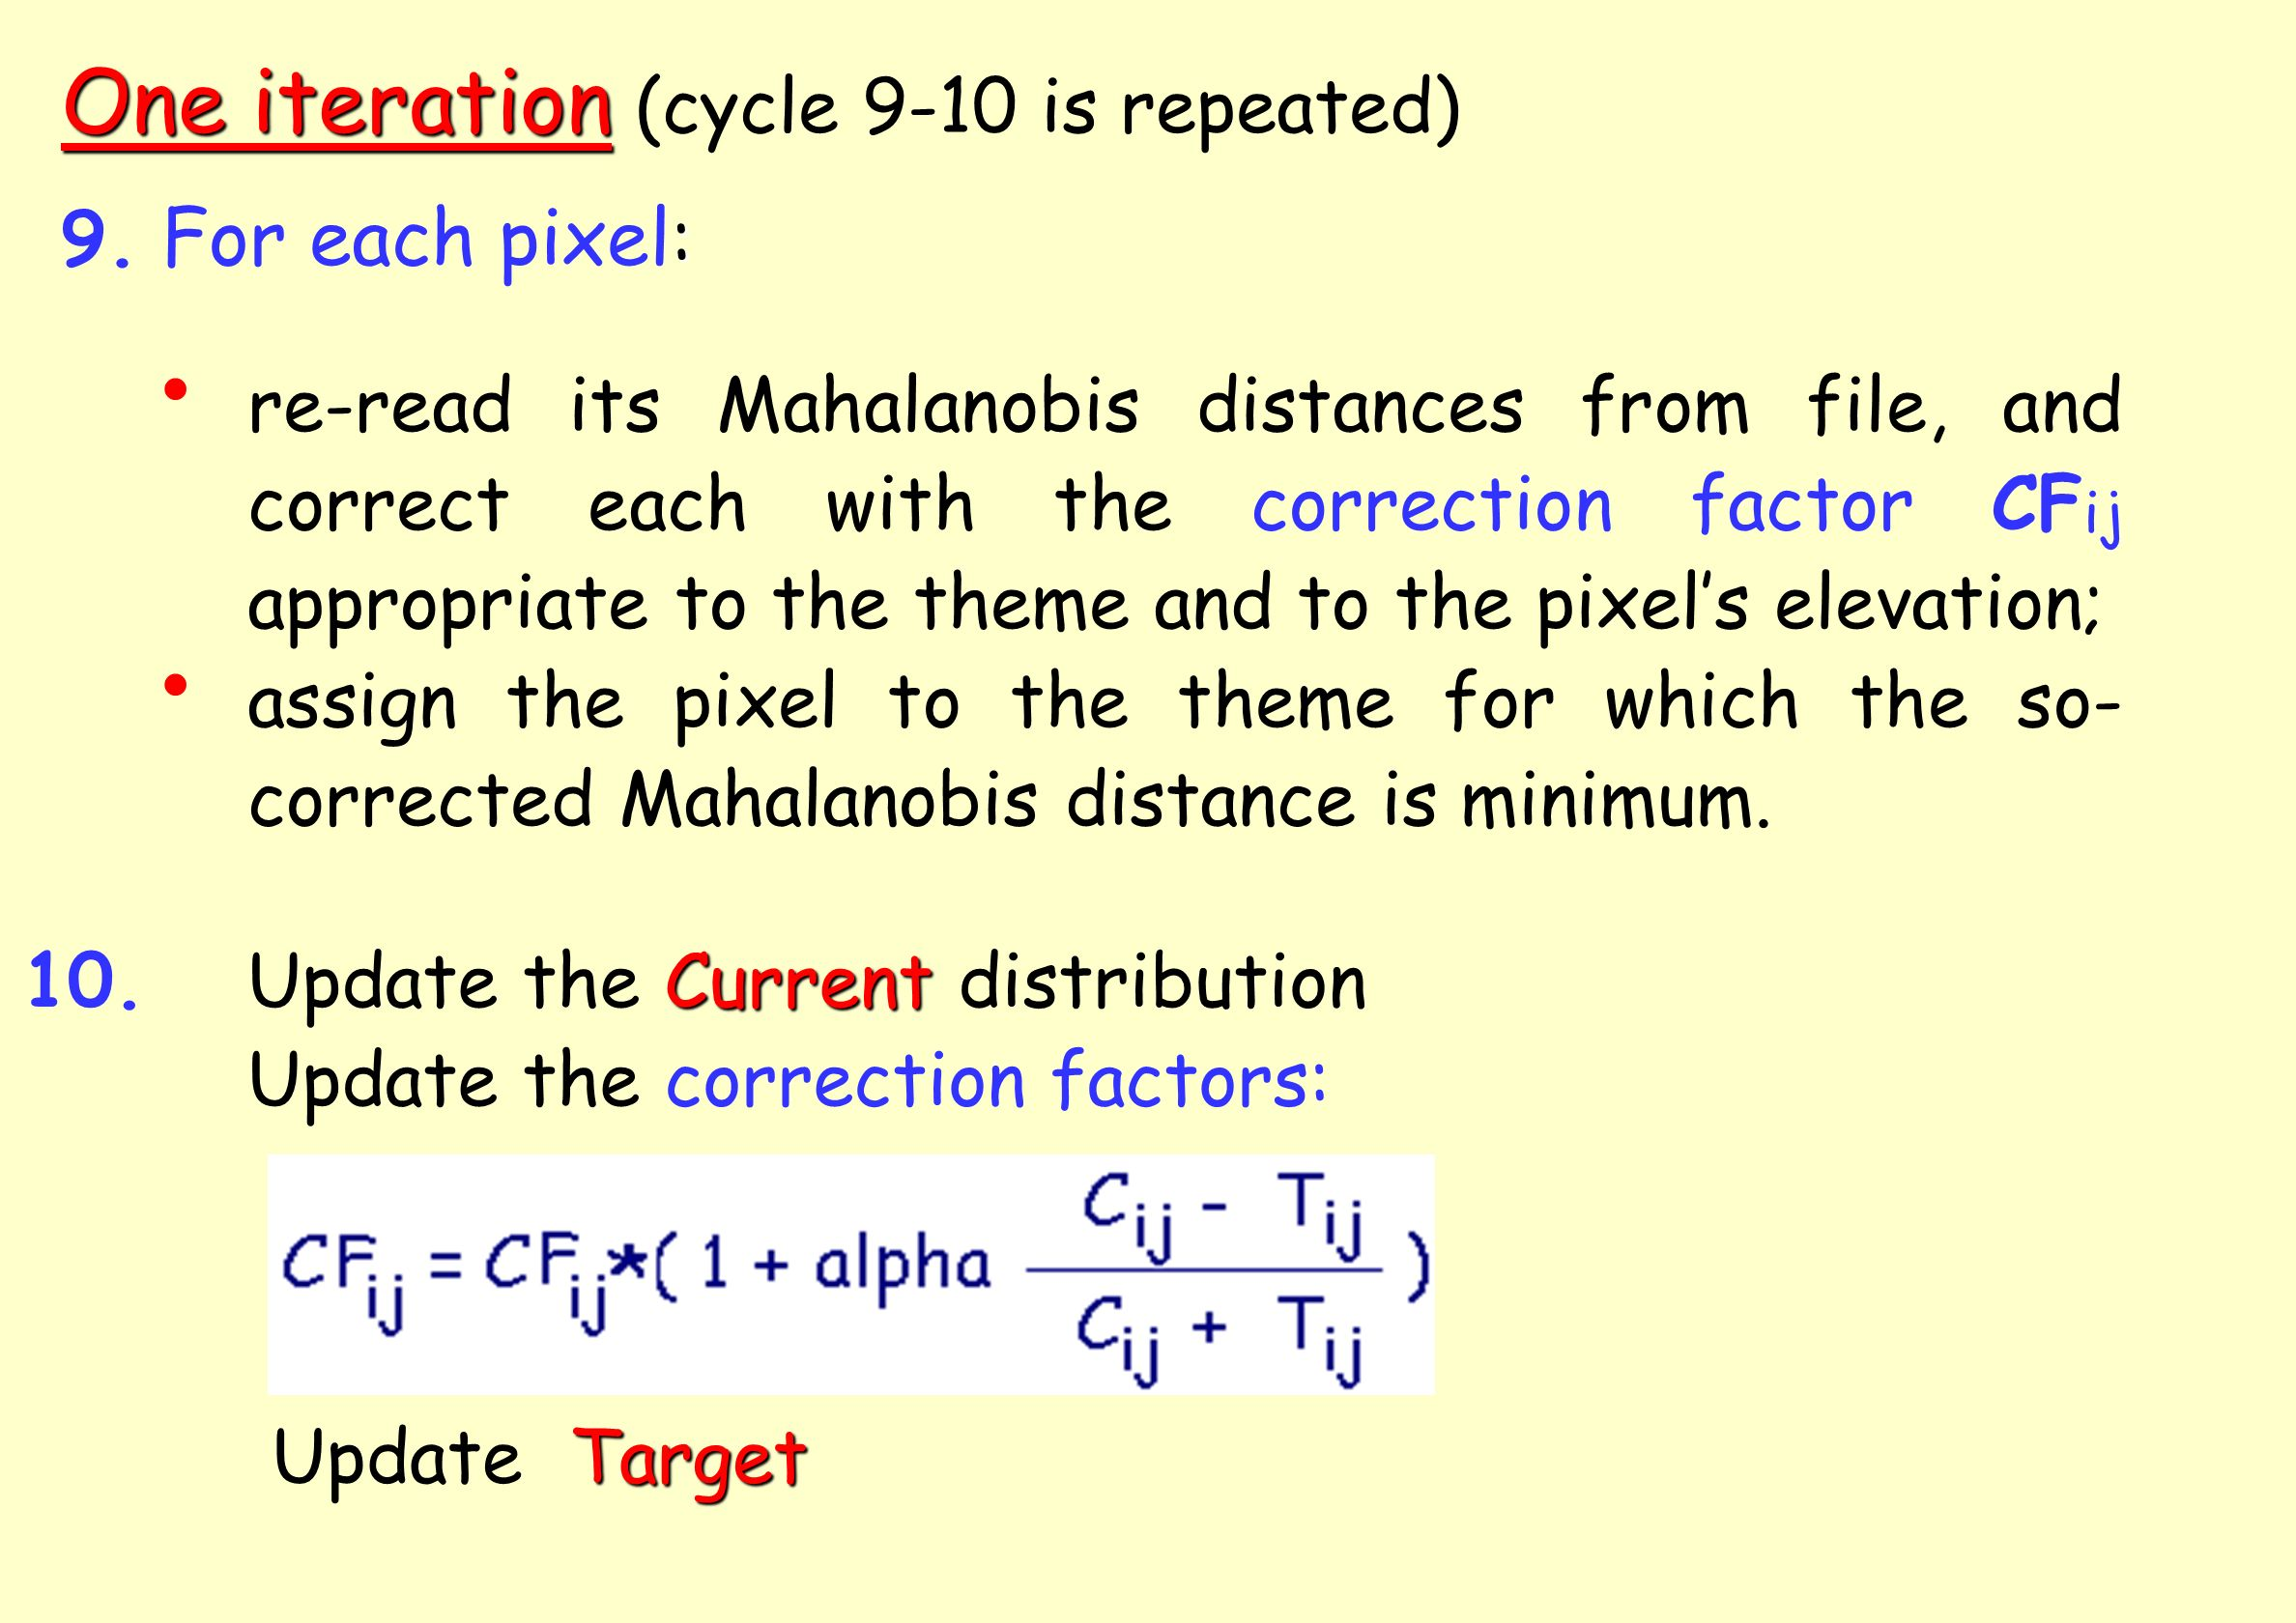 One iteration One iteration (cycle 9-10 is repeated) re-read its Mahalanobis distances from file, and correct each with the correction factor CF ij appropriate to the theme and to the pixels elevation; assign the pixel to the theme for which the so- corrected Mahalanobis distance is minimum.